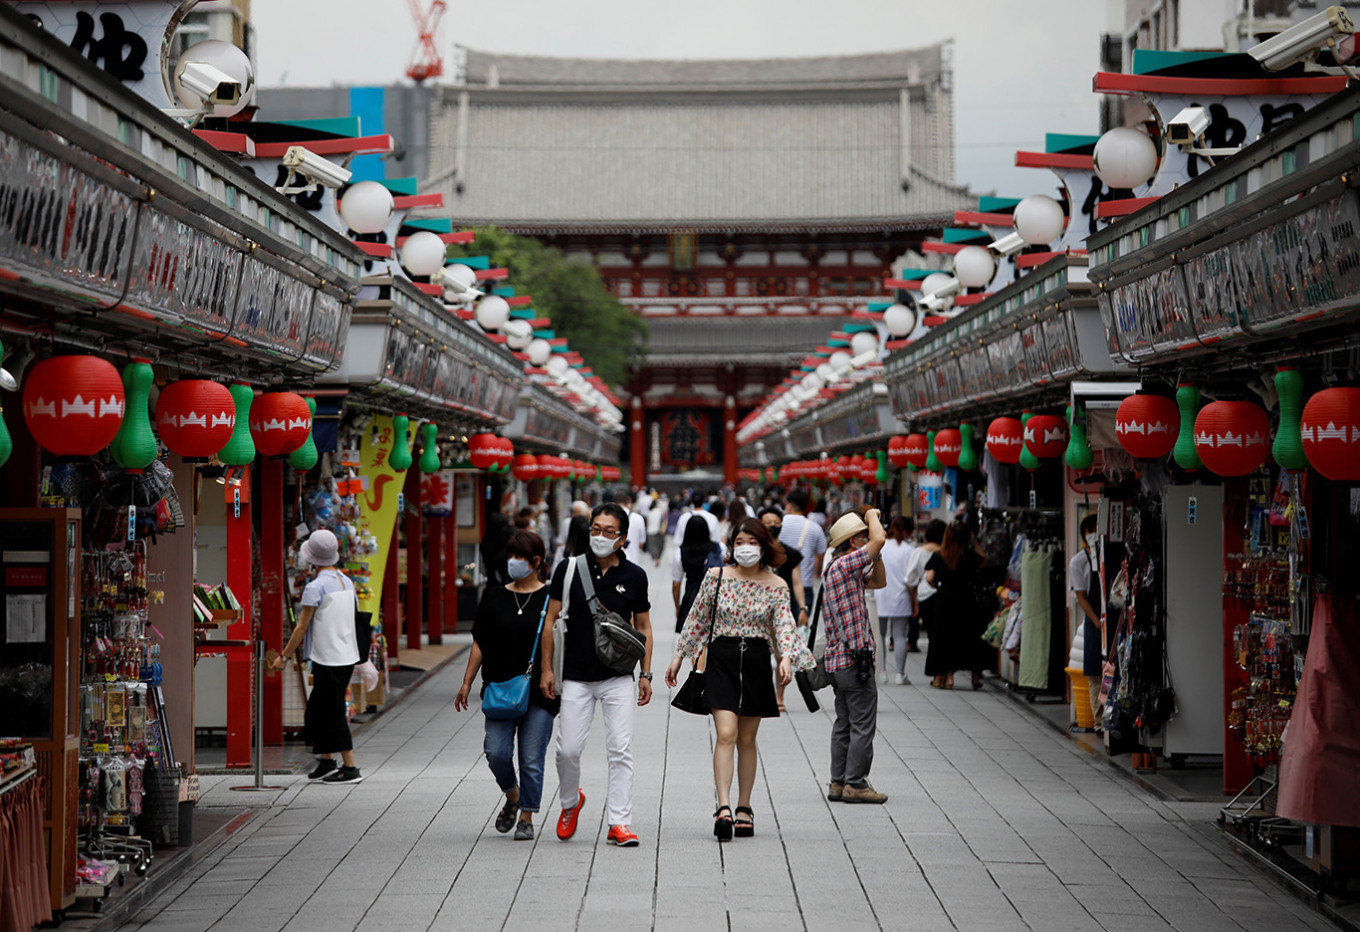 Japan's capital sets new daily record of 366 coronavirus infections